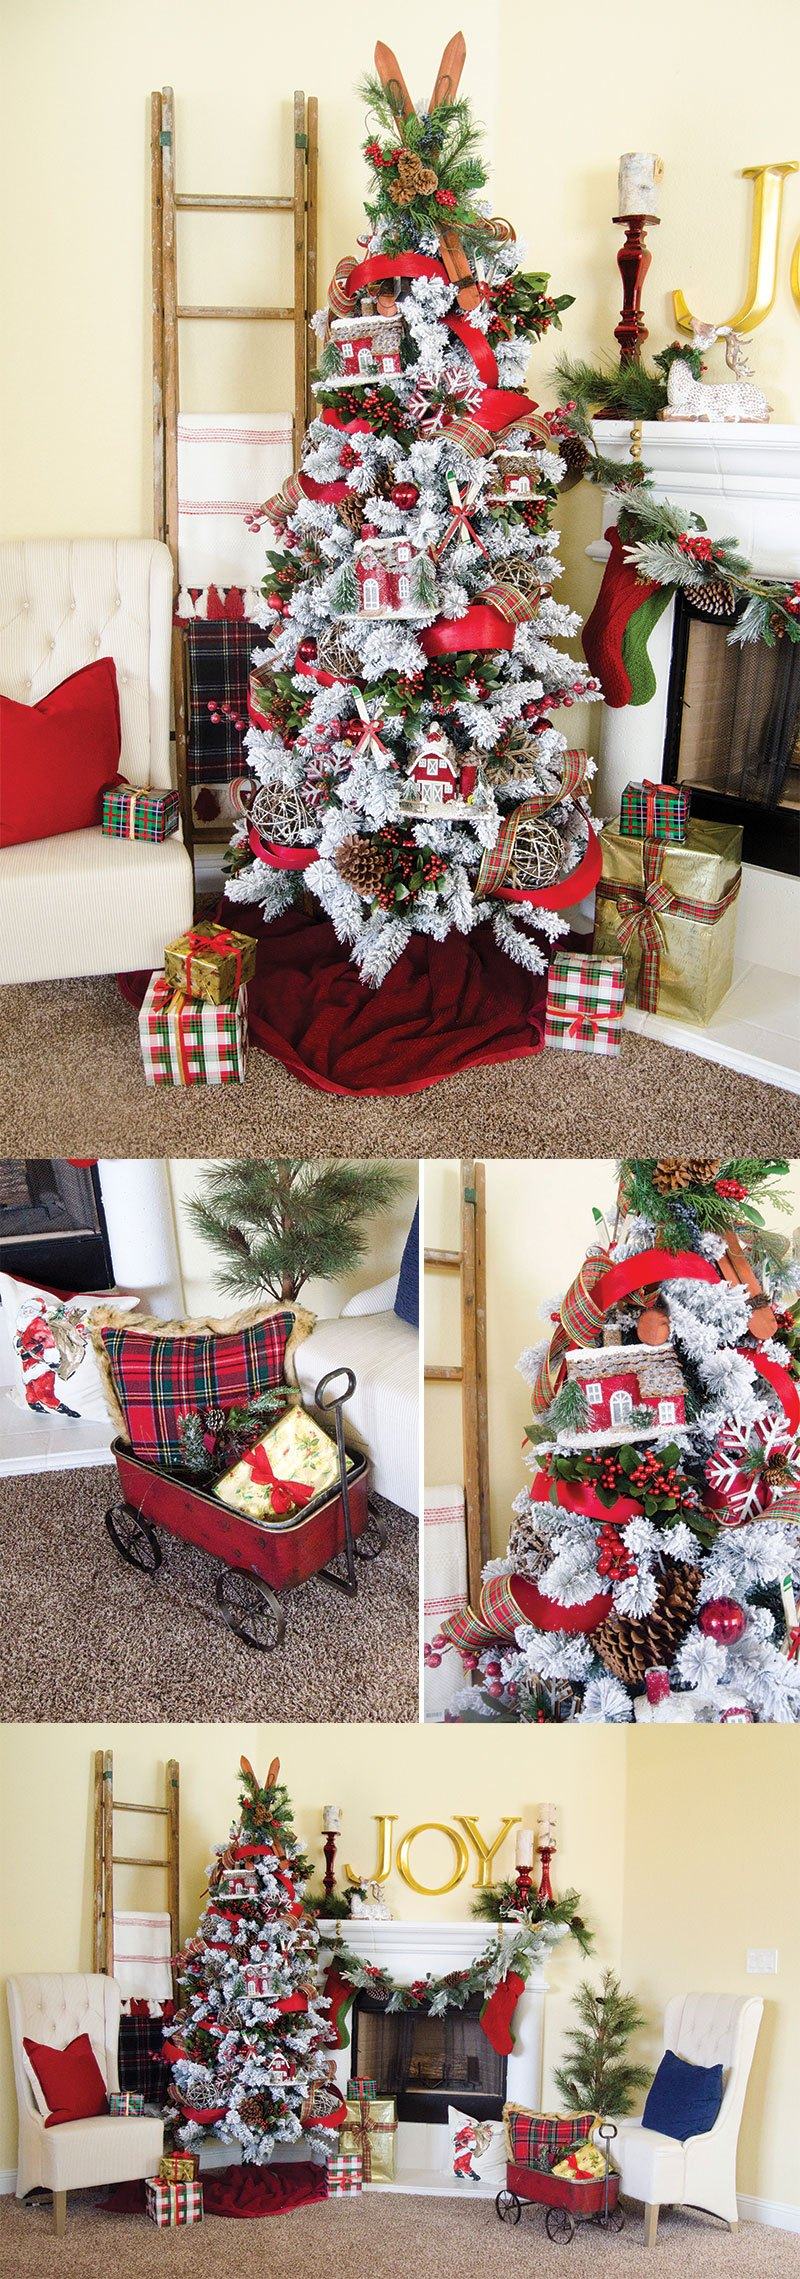 Plaid Christmas Tree Decor Idea by Lindi Haws